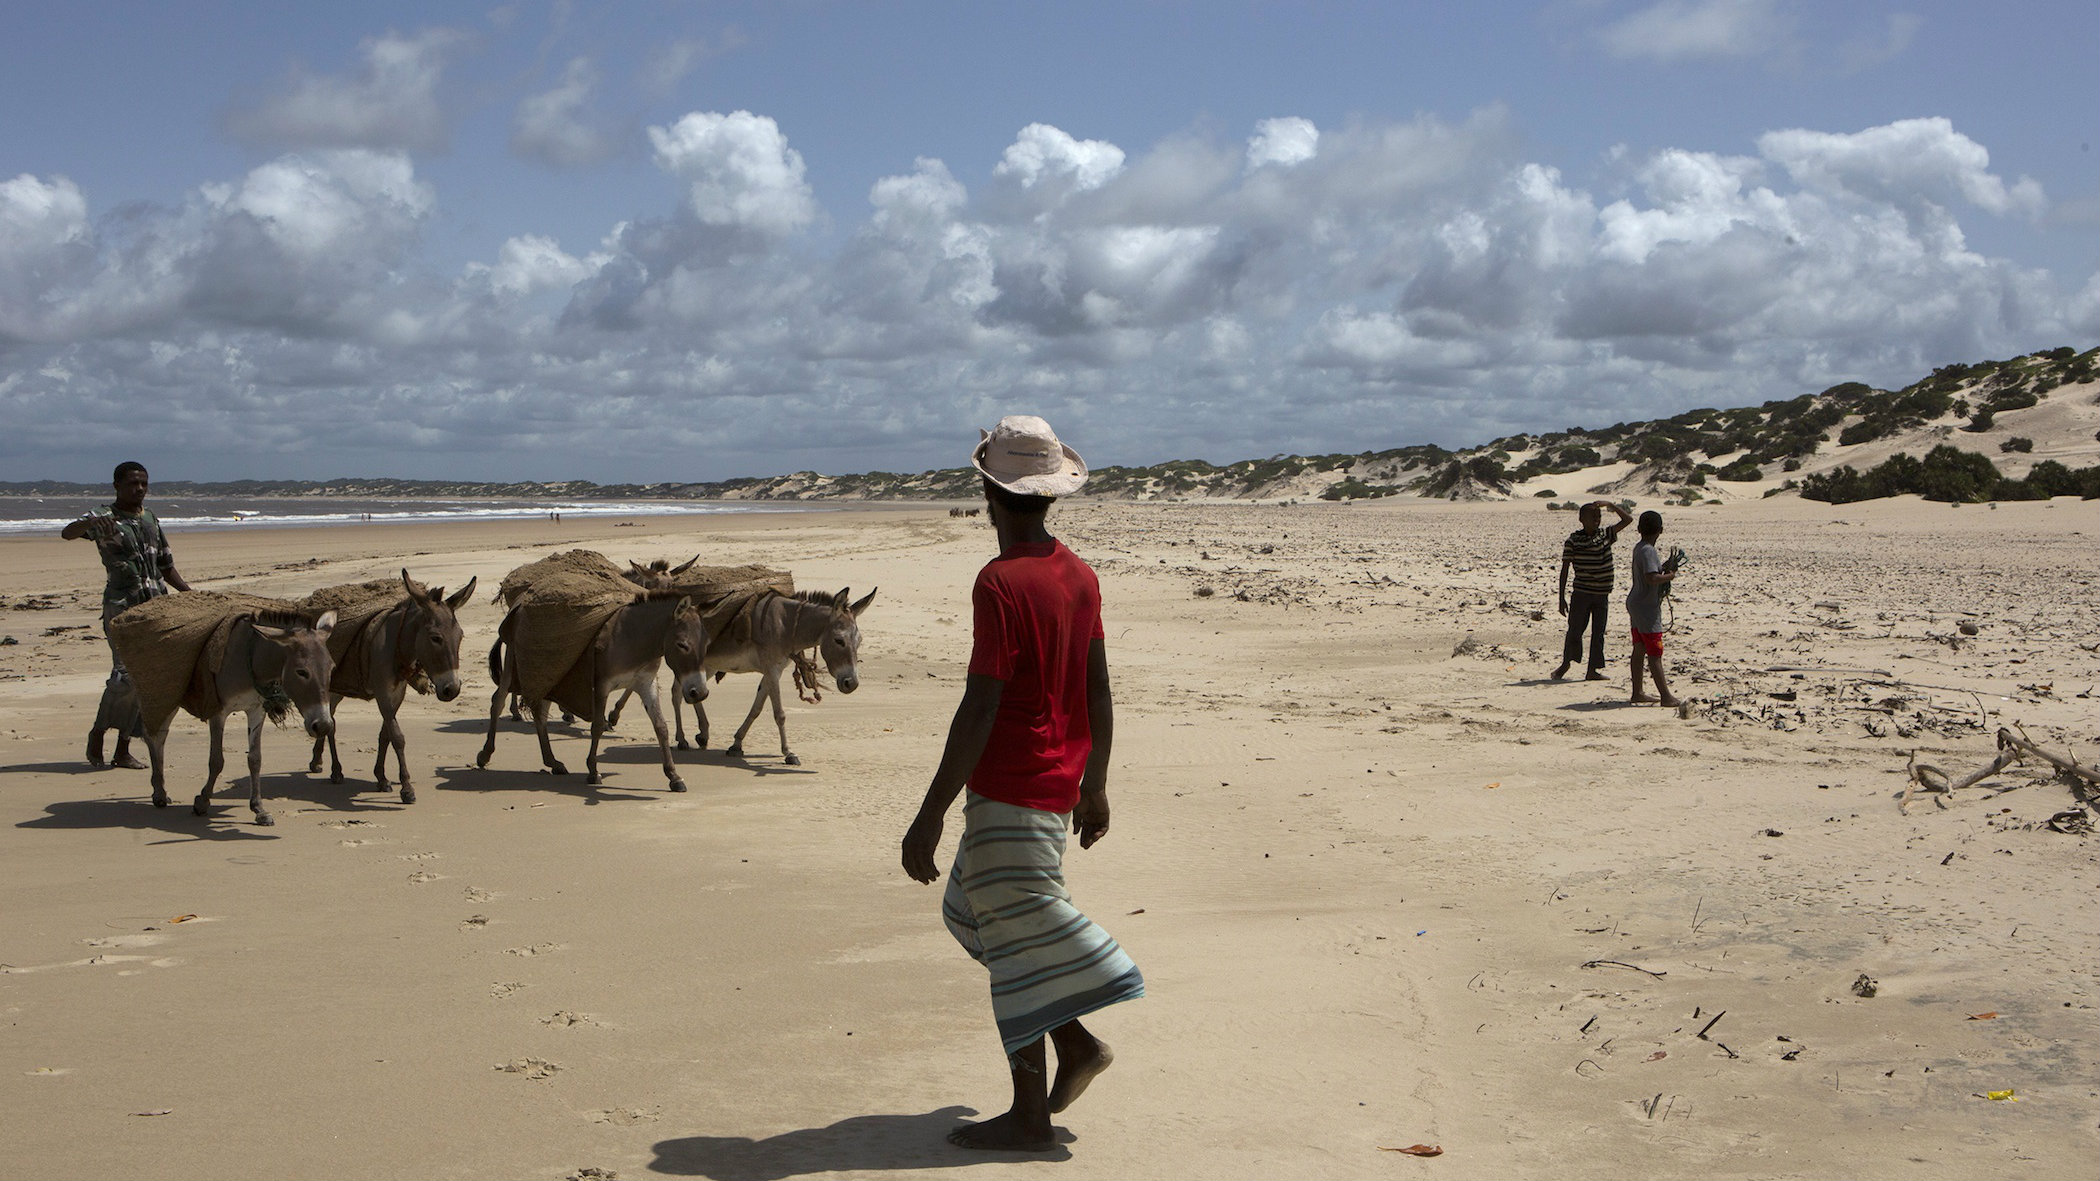 Men lead donkeys carrying sand, to be used to mix building cement, on the beach of Shela in Lamu